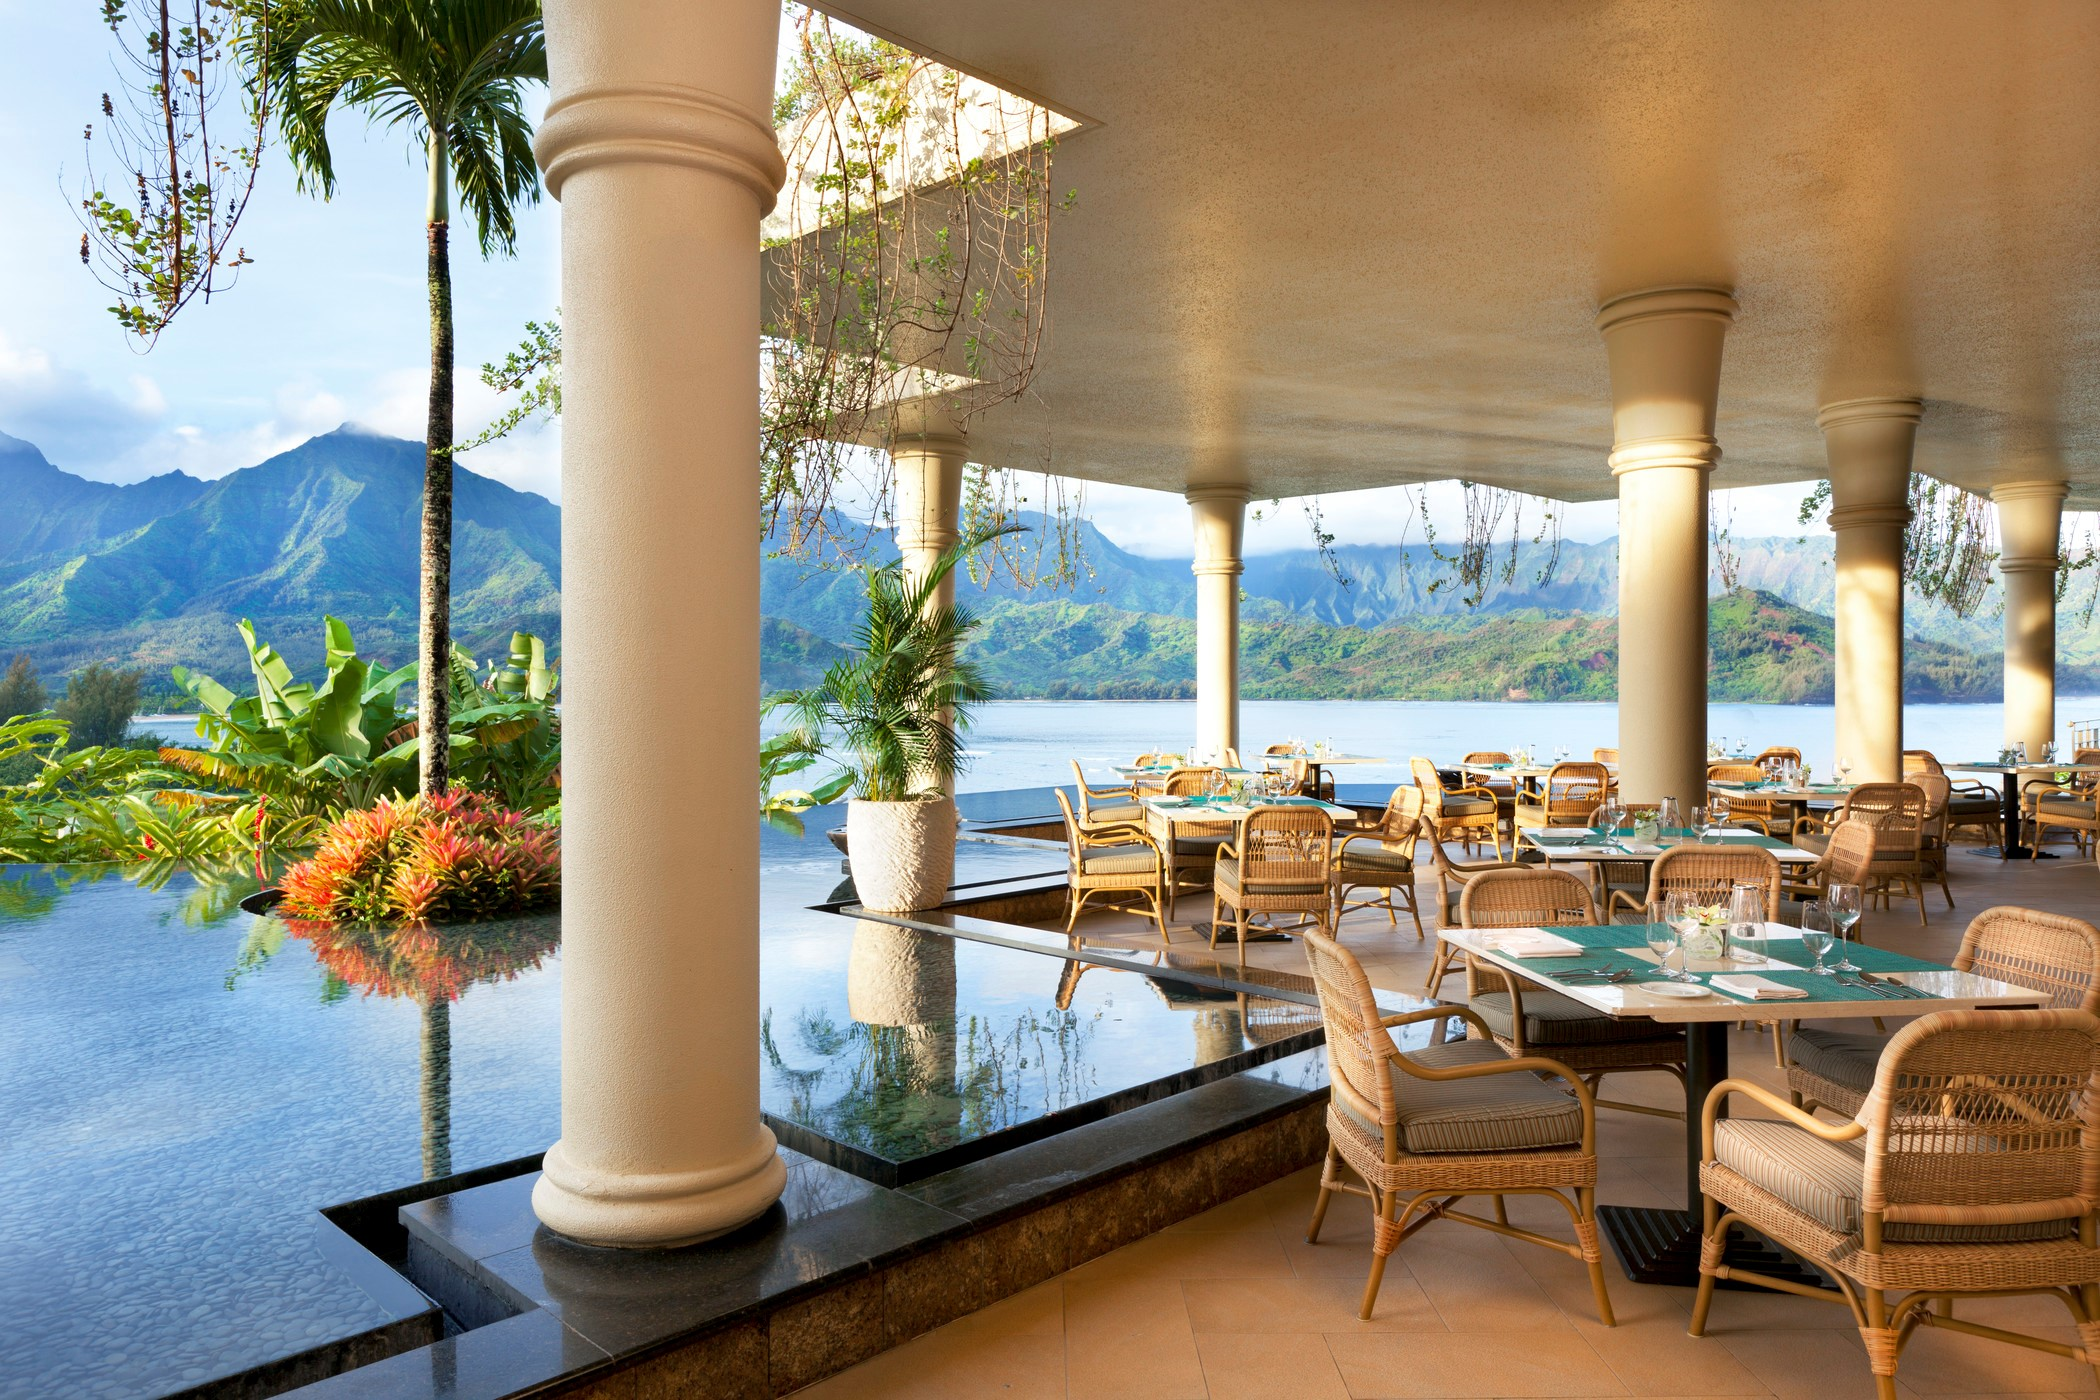 In Search of Hotel Excellence: The St. Regis Princeville Resort